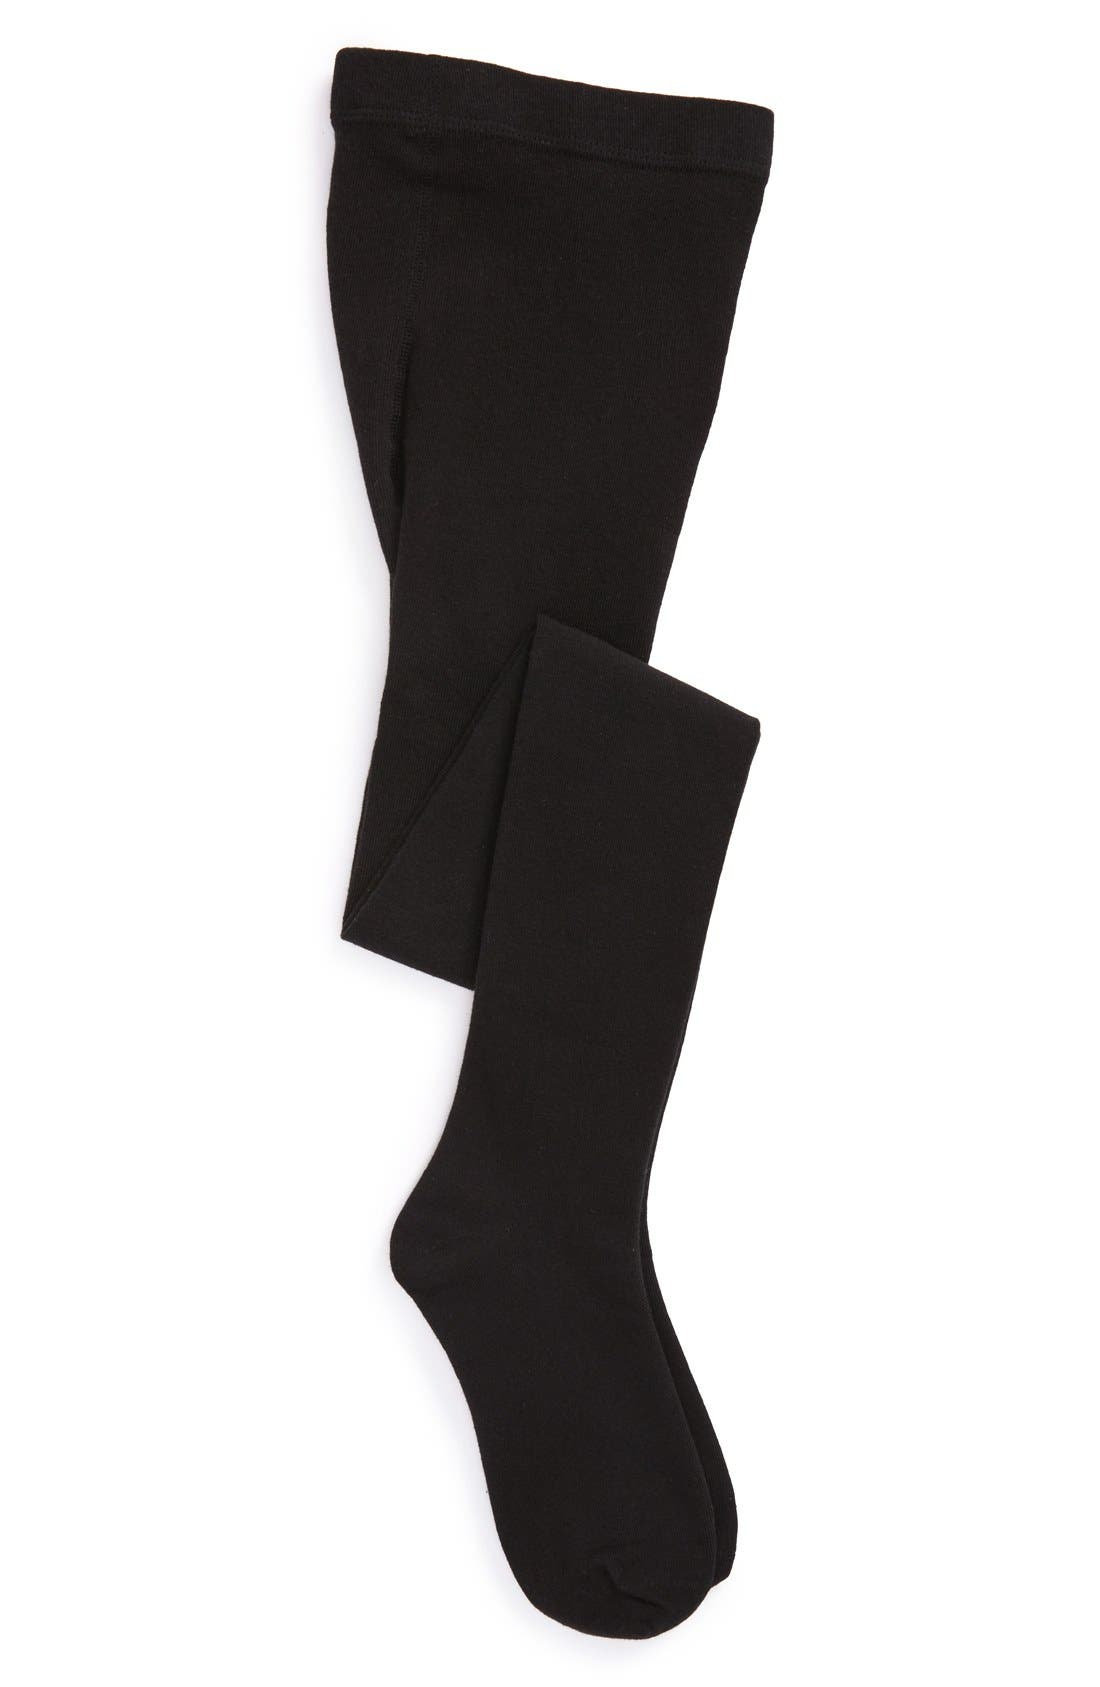 Nordstrom Sweater Tights,                         Main,                         color, Black